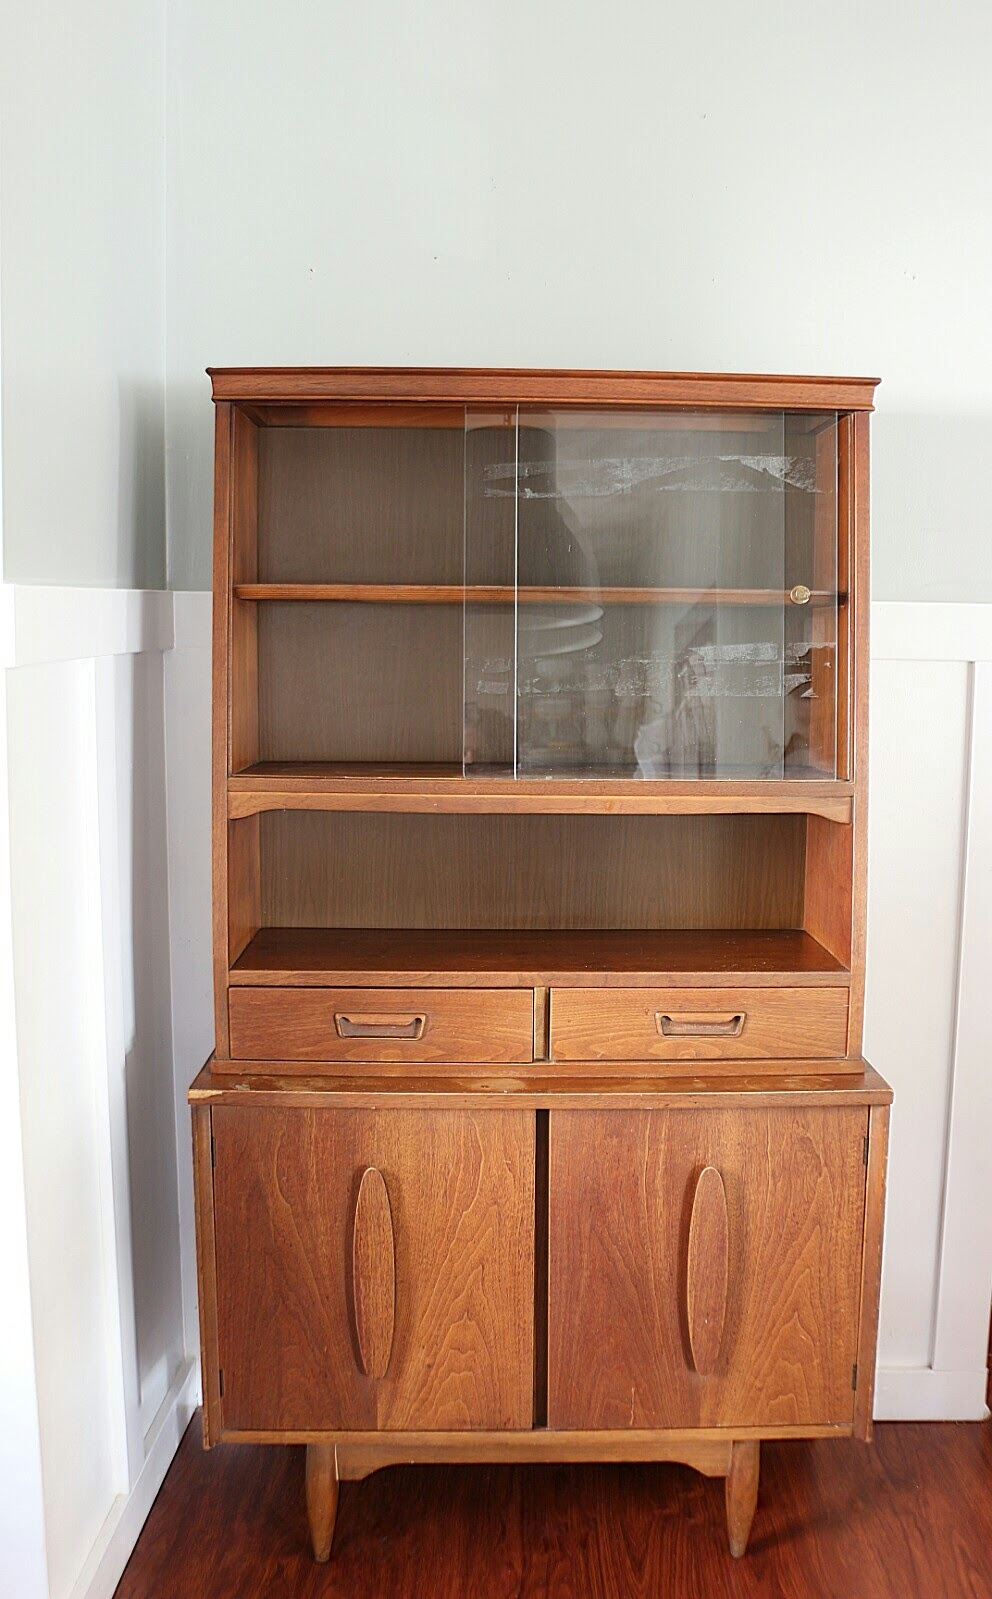 How To Style a Mid-century Modern Hutch - Made by Carli